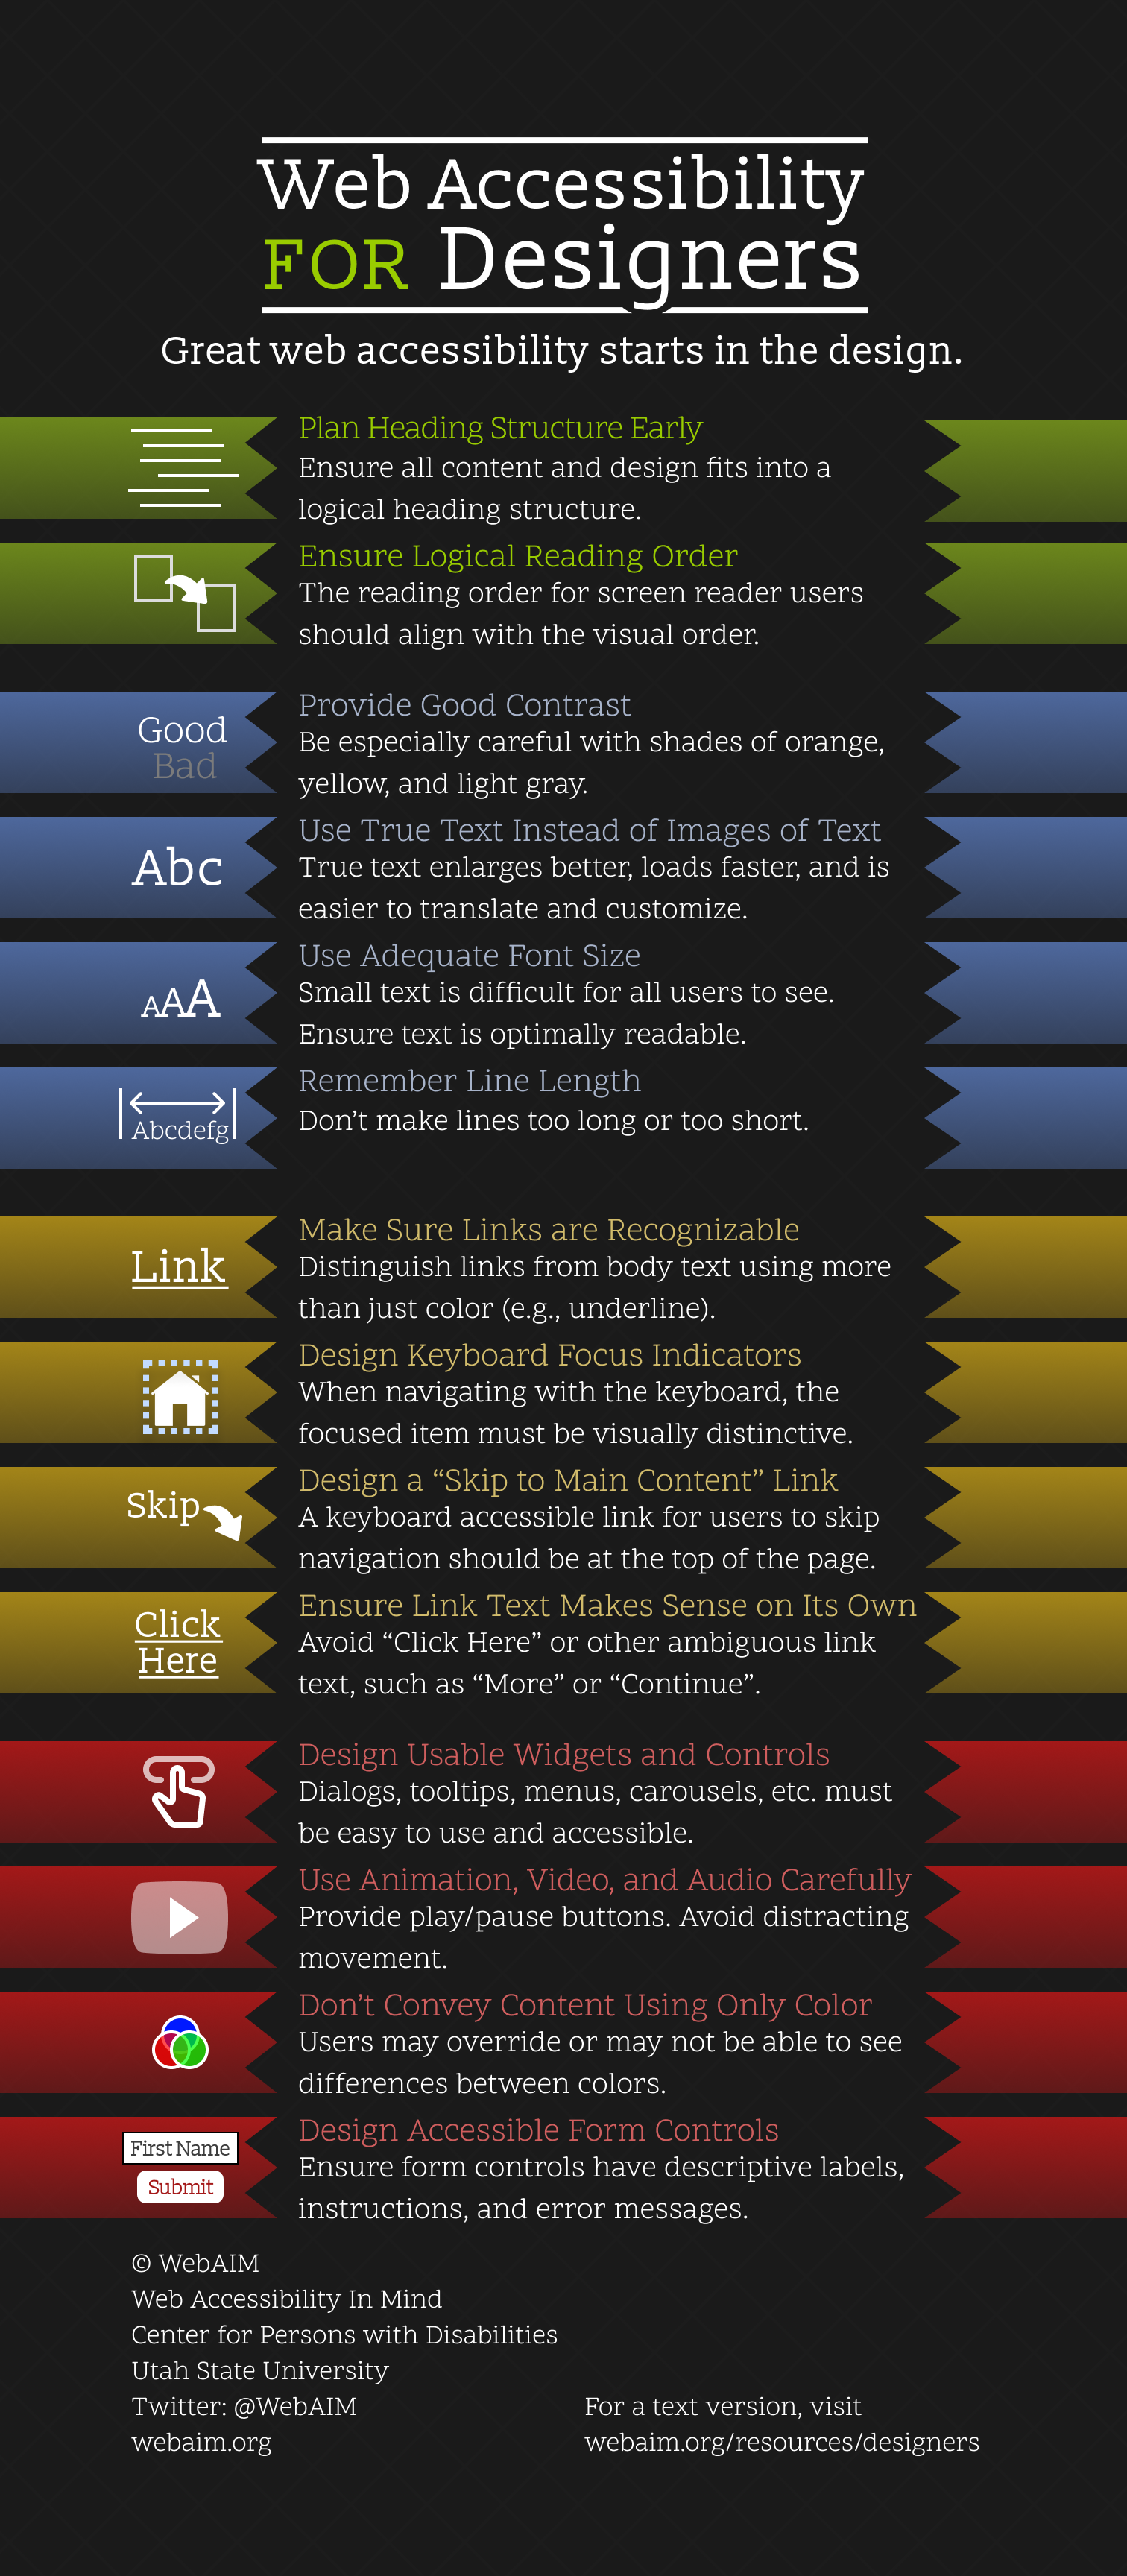 Web Accessibility for Designers infographic; text version at WebAIM.org